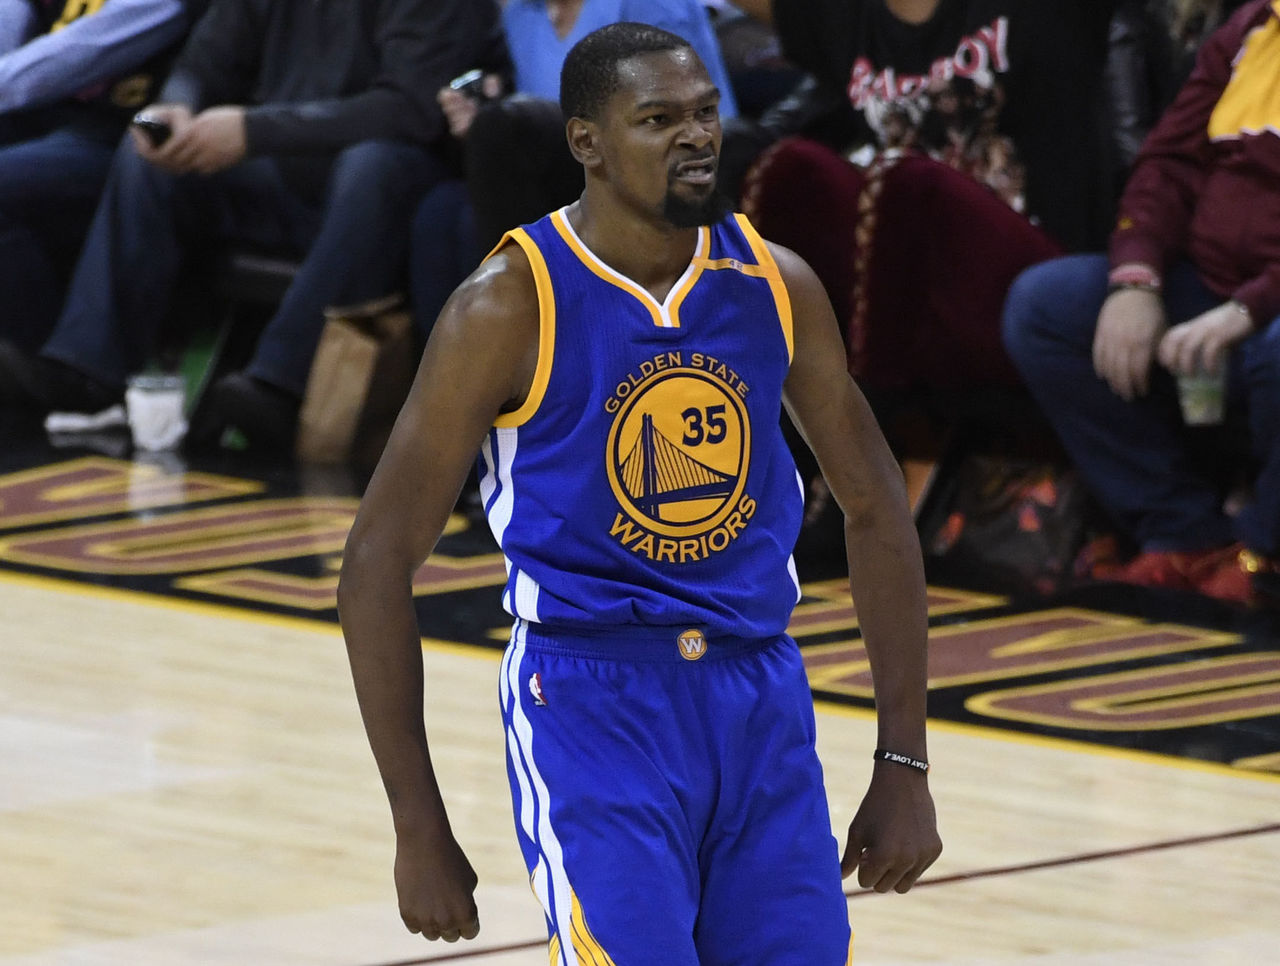 Watch: Durant drills dagger 3 over LeBron to put Warriors up 3-0 | theScore.com